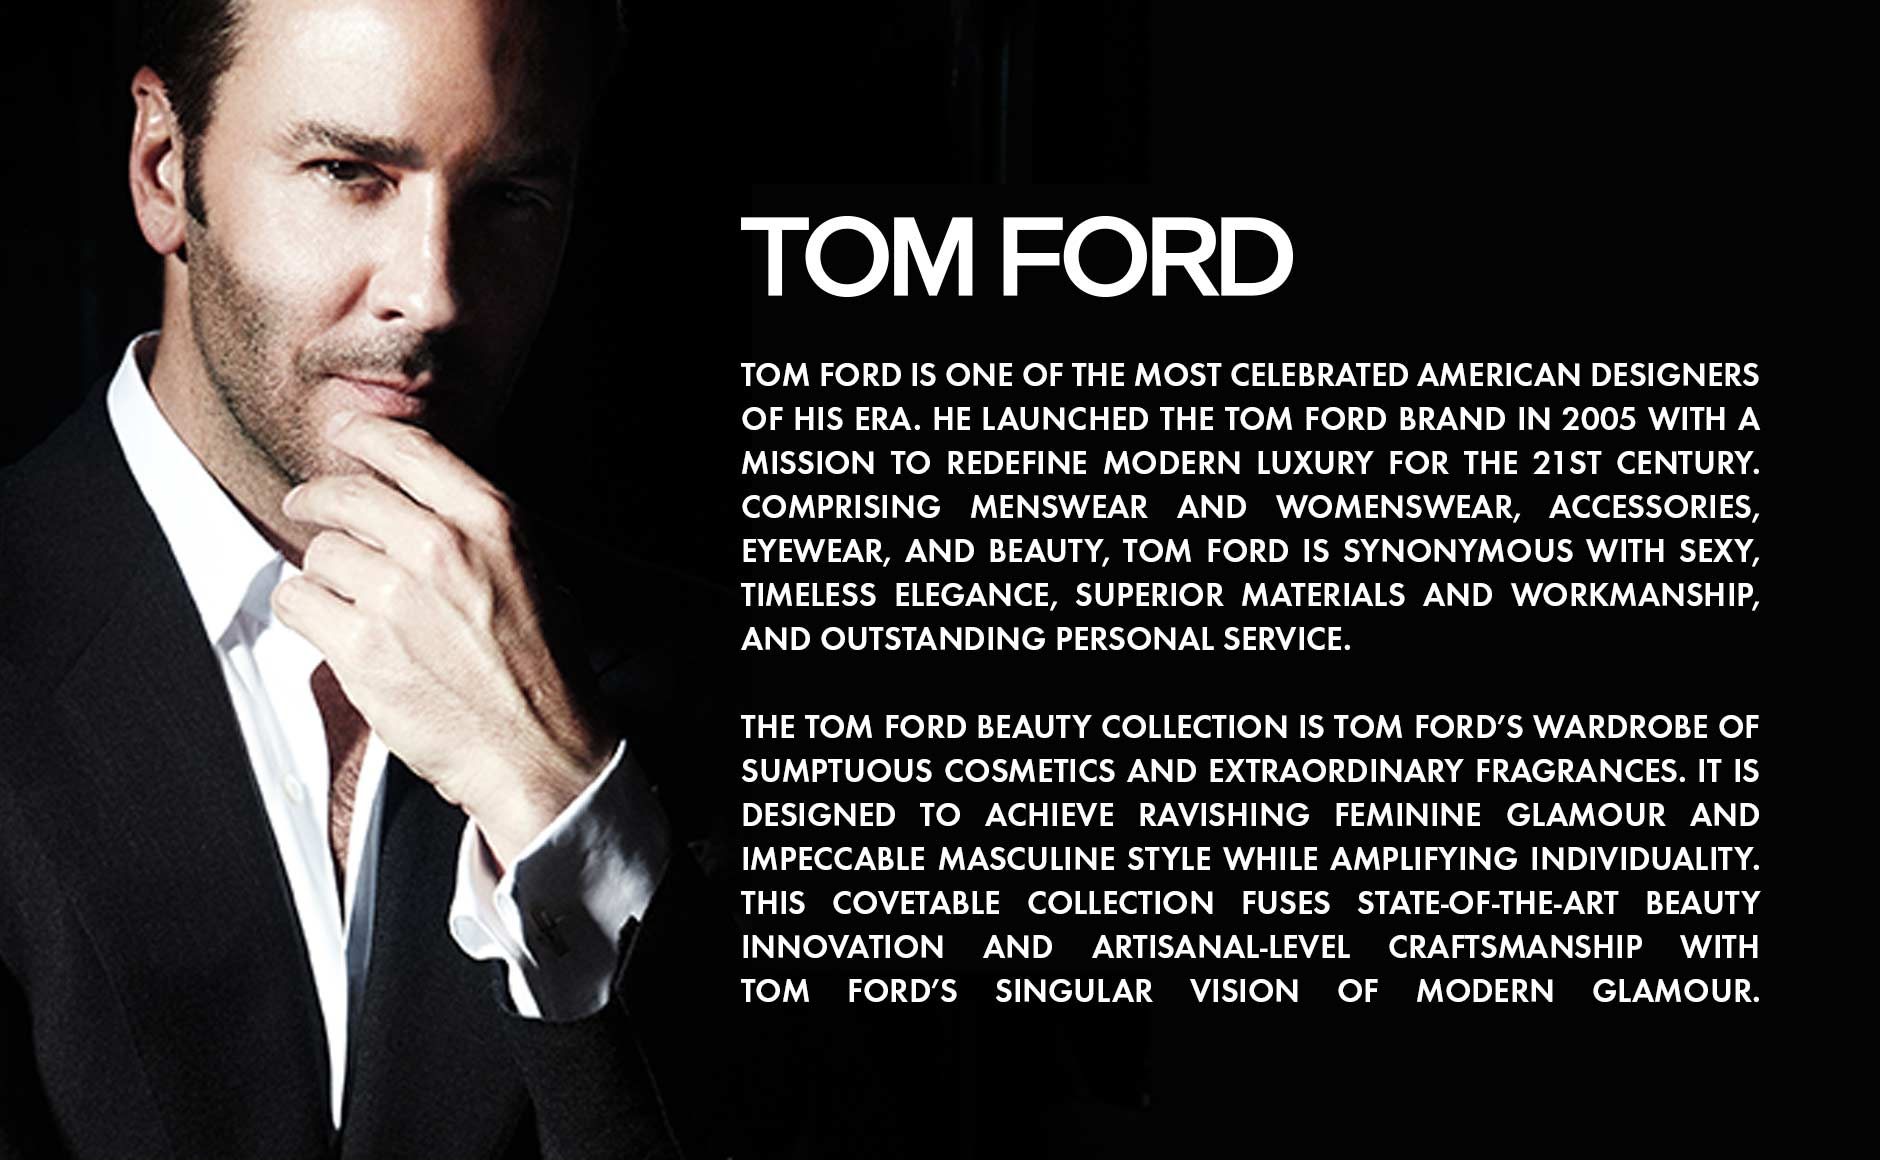 tom ford biography who is tom ford about tom ford neiman marcus. Black Bedroom Furniture Sets. Home Design Ideas